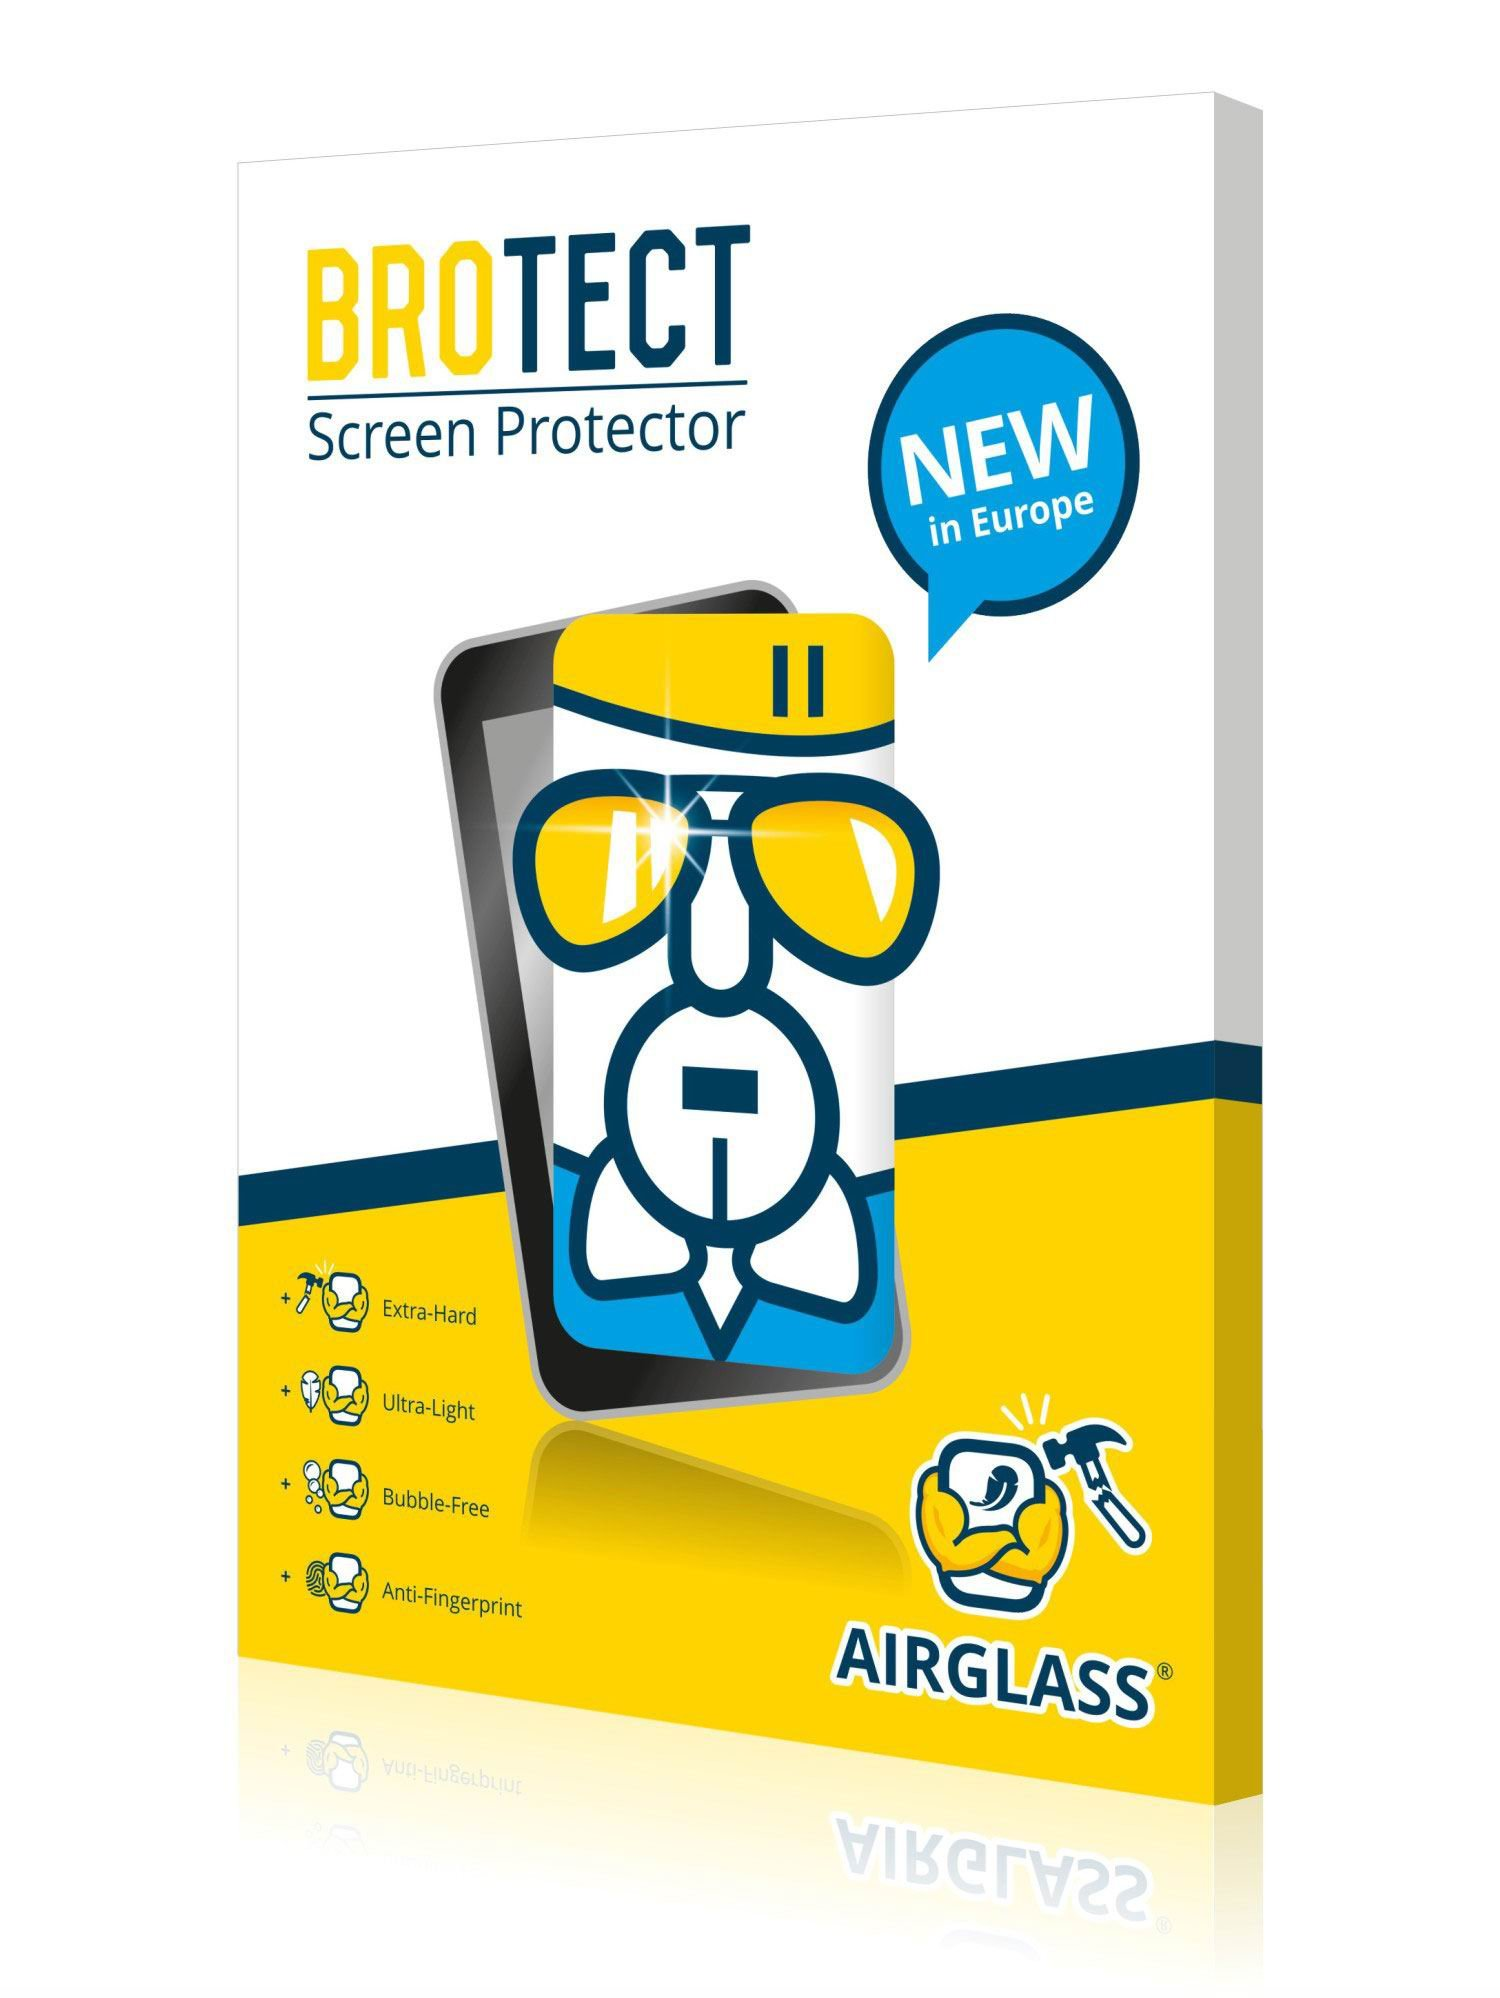 BROTECT AirGlass Glass screen protector for Seat Easy Connect (6.5), Extra-Hard, Ultra-Light, screen guard